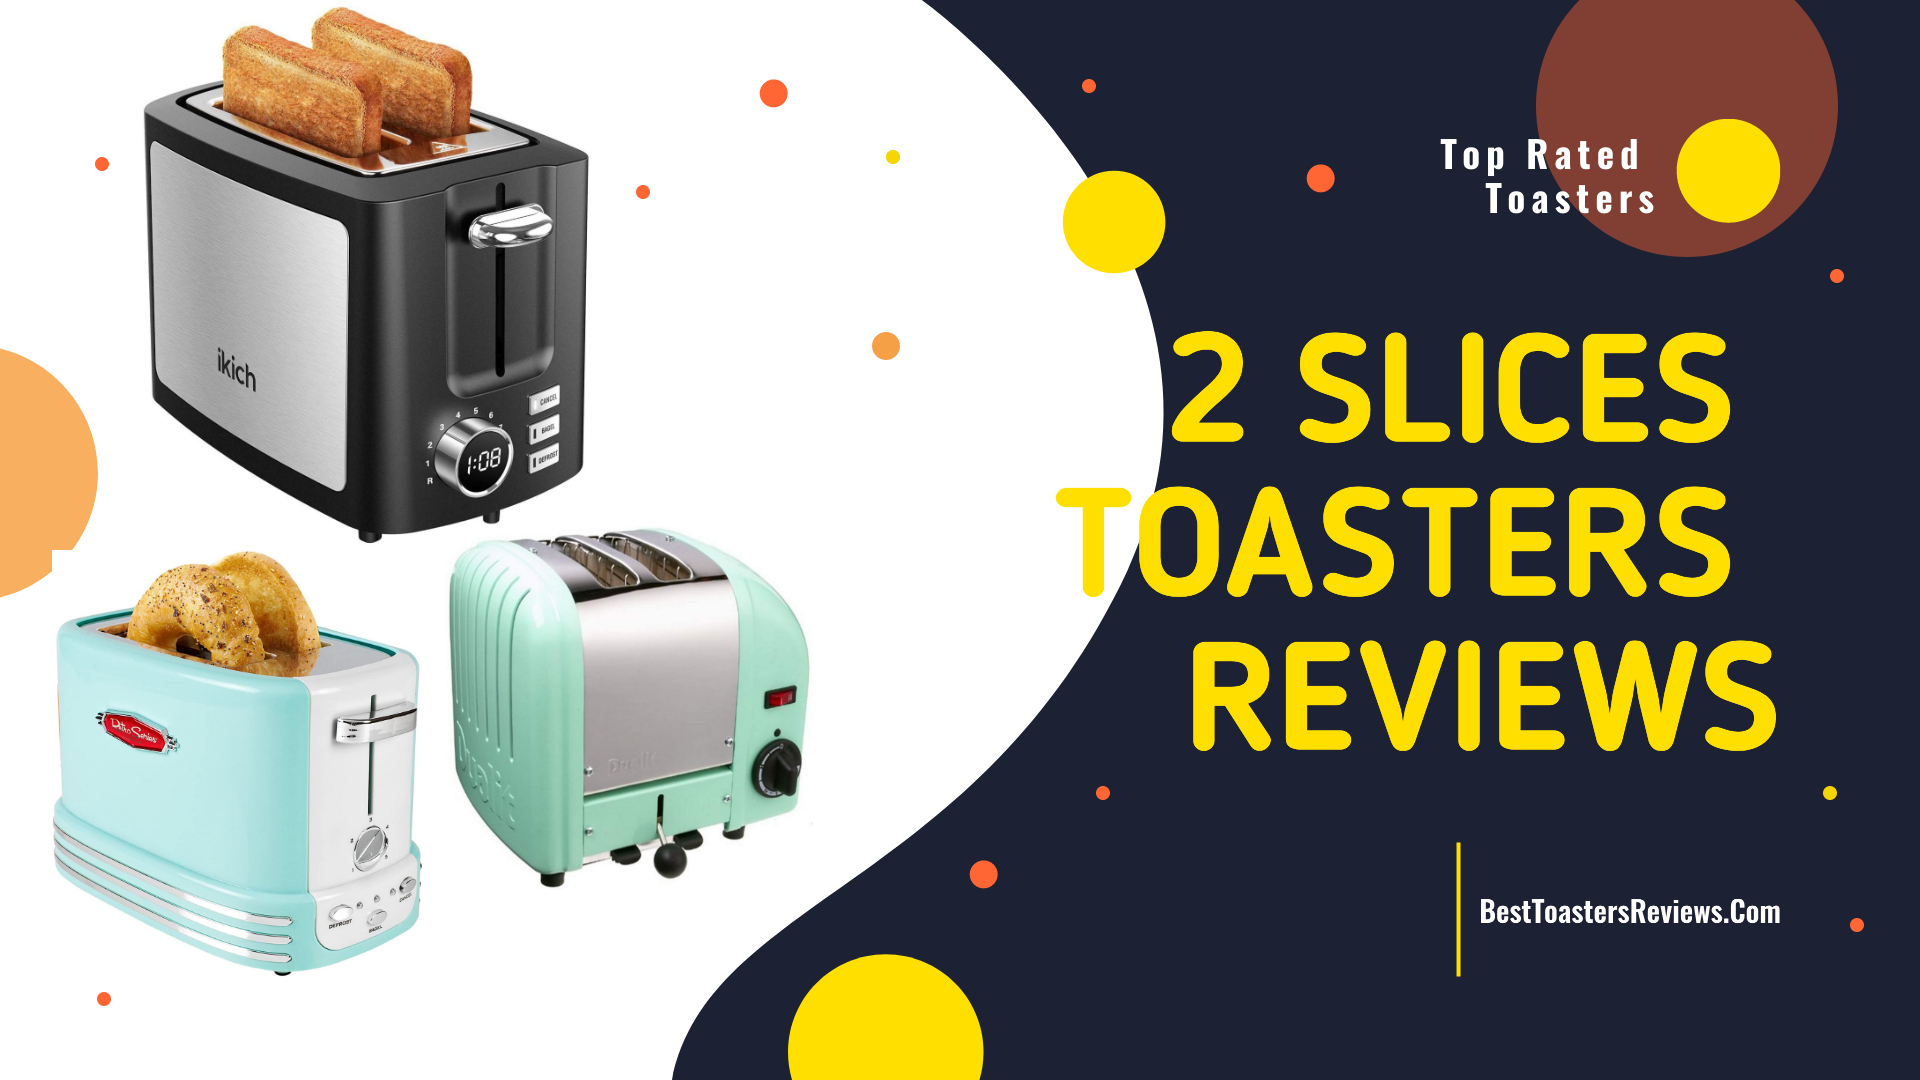 2 Slices Toasters Reviews